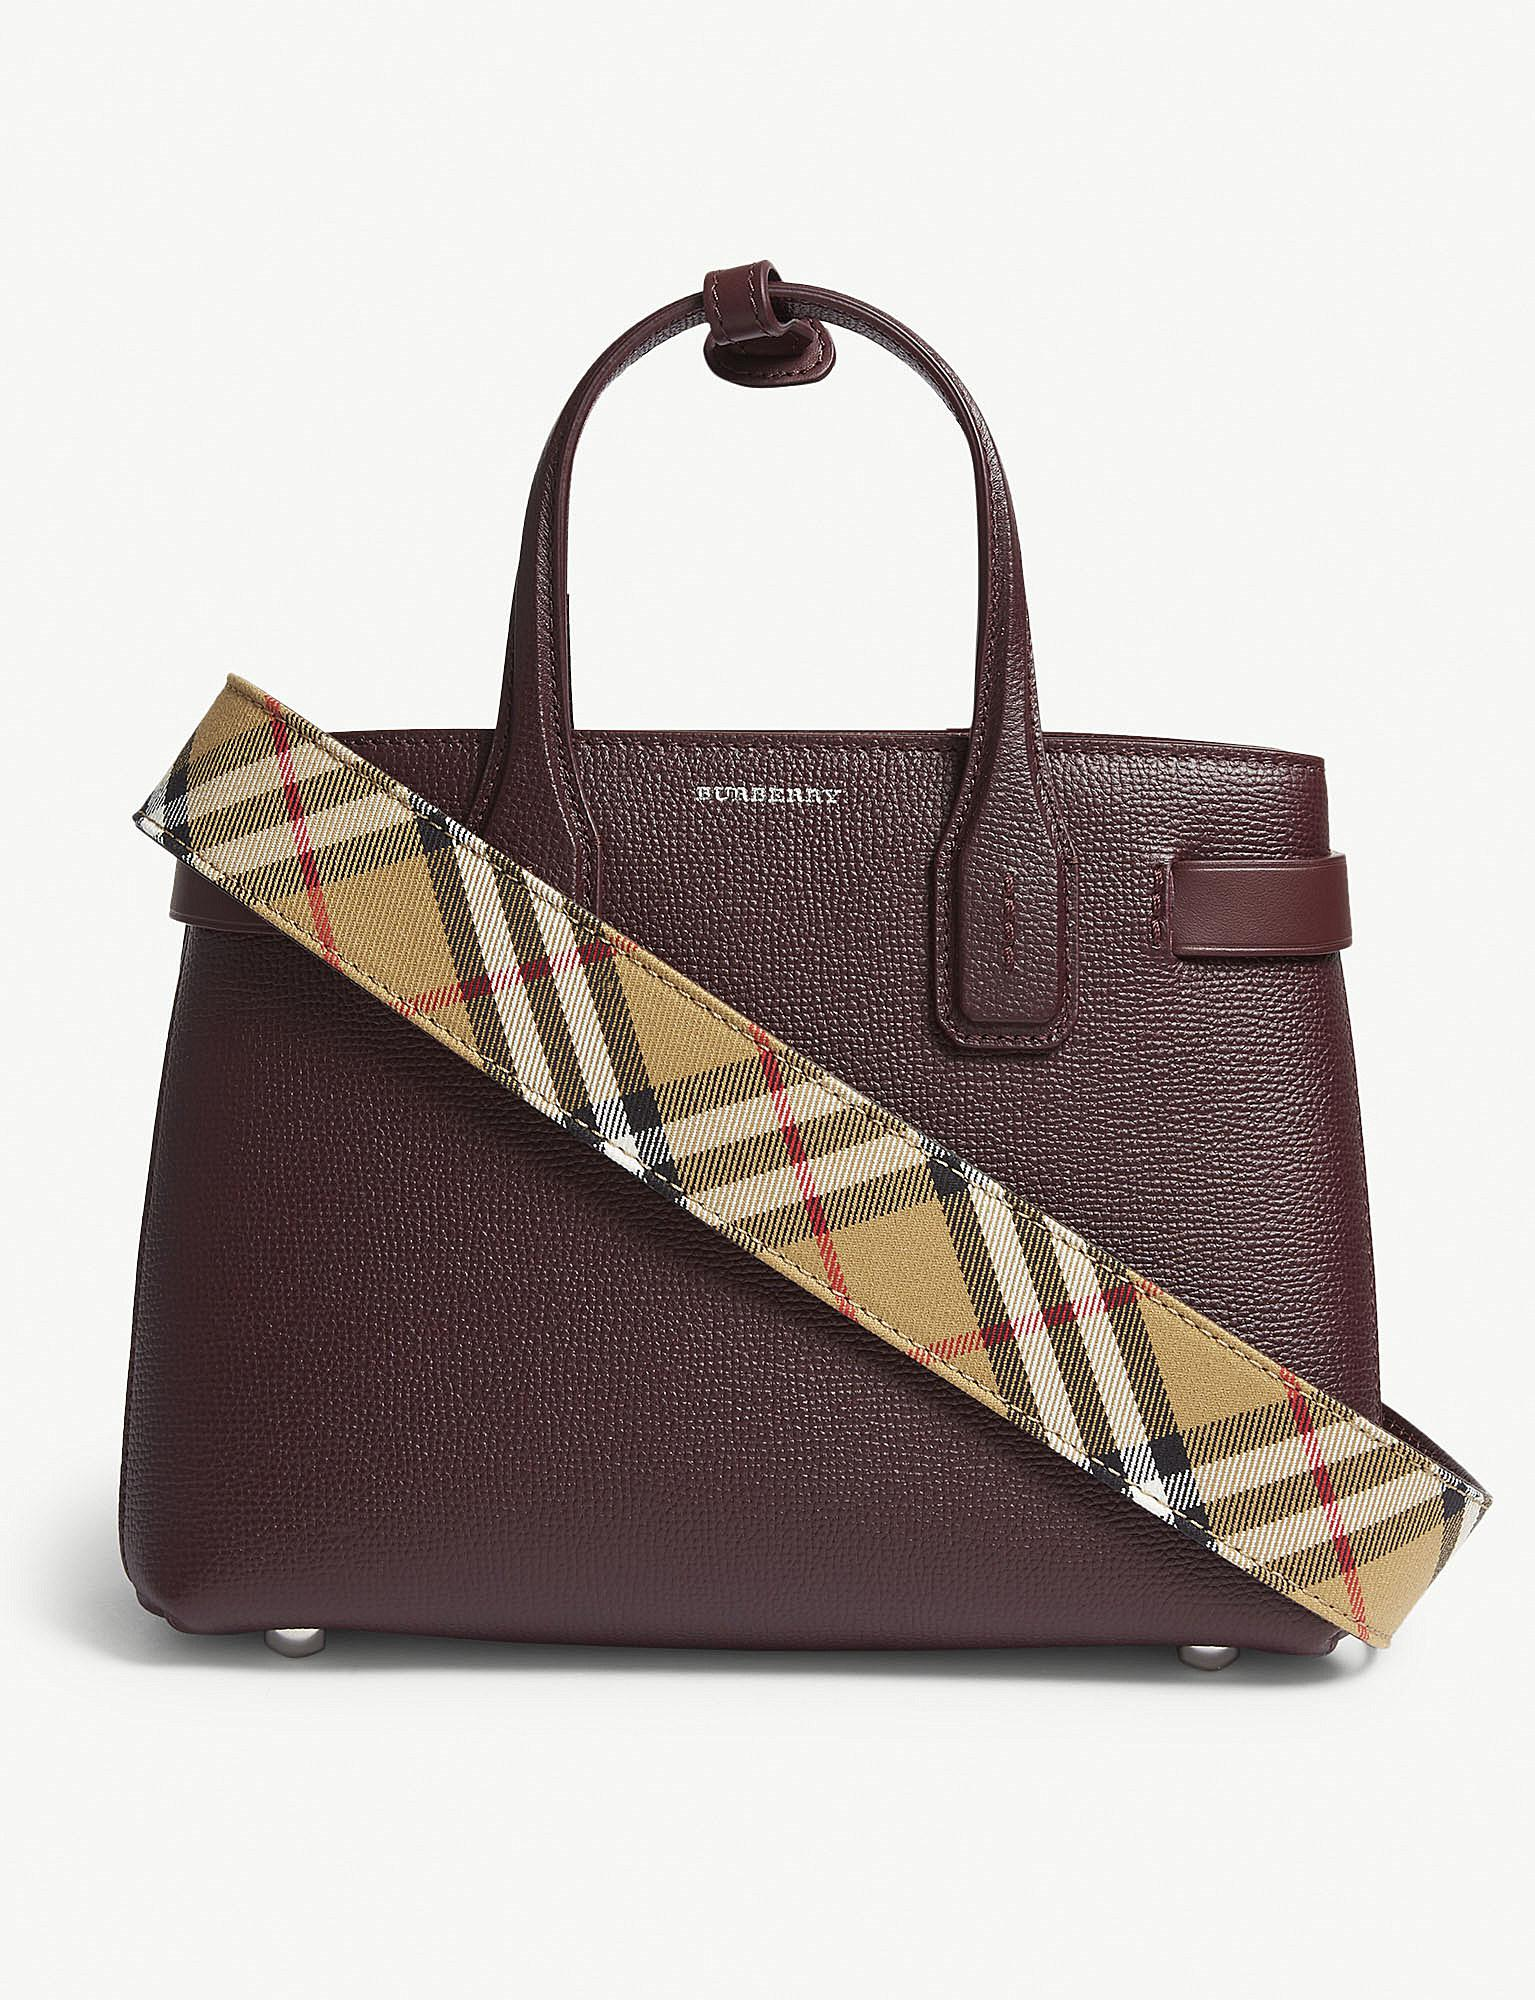 56bbfe30d819 Burberry. Women s Mahogany Red Check Banner Small Grained Leather Tote Bag